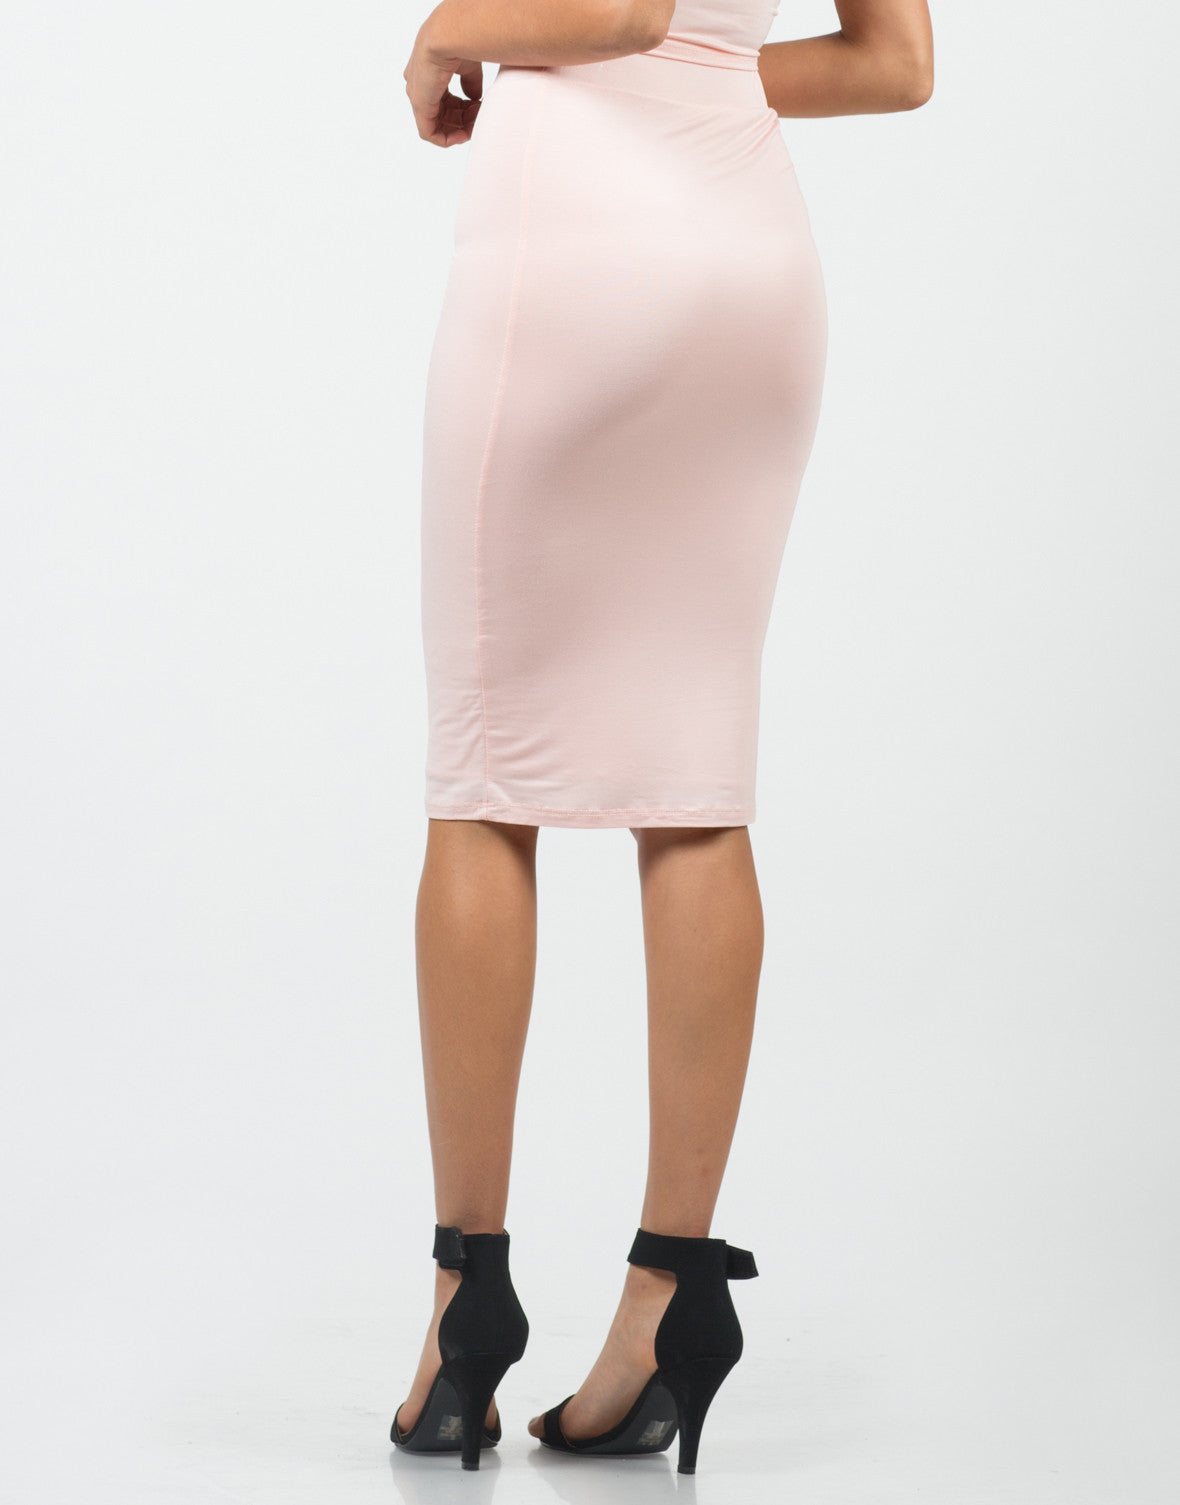 Back View of Mid Length Skirt